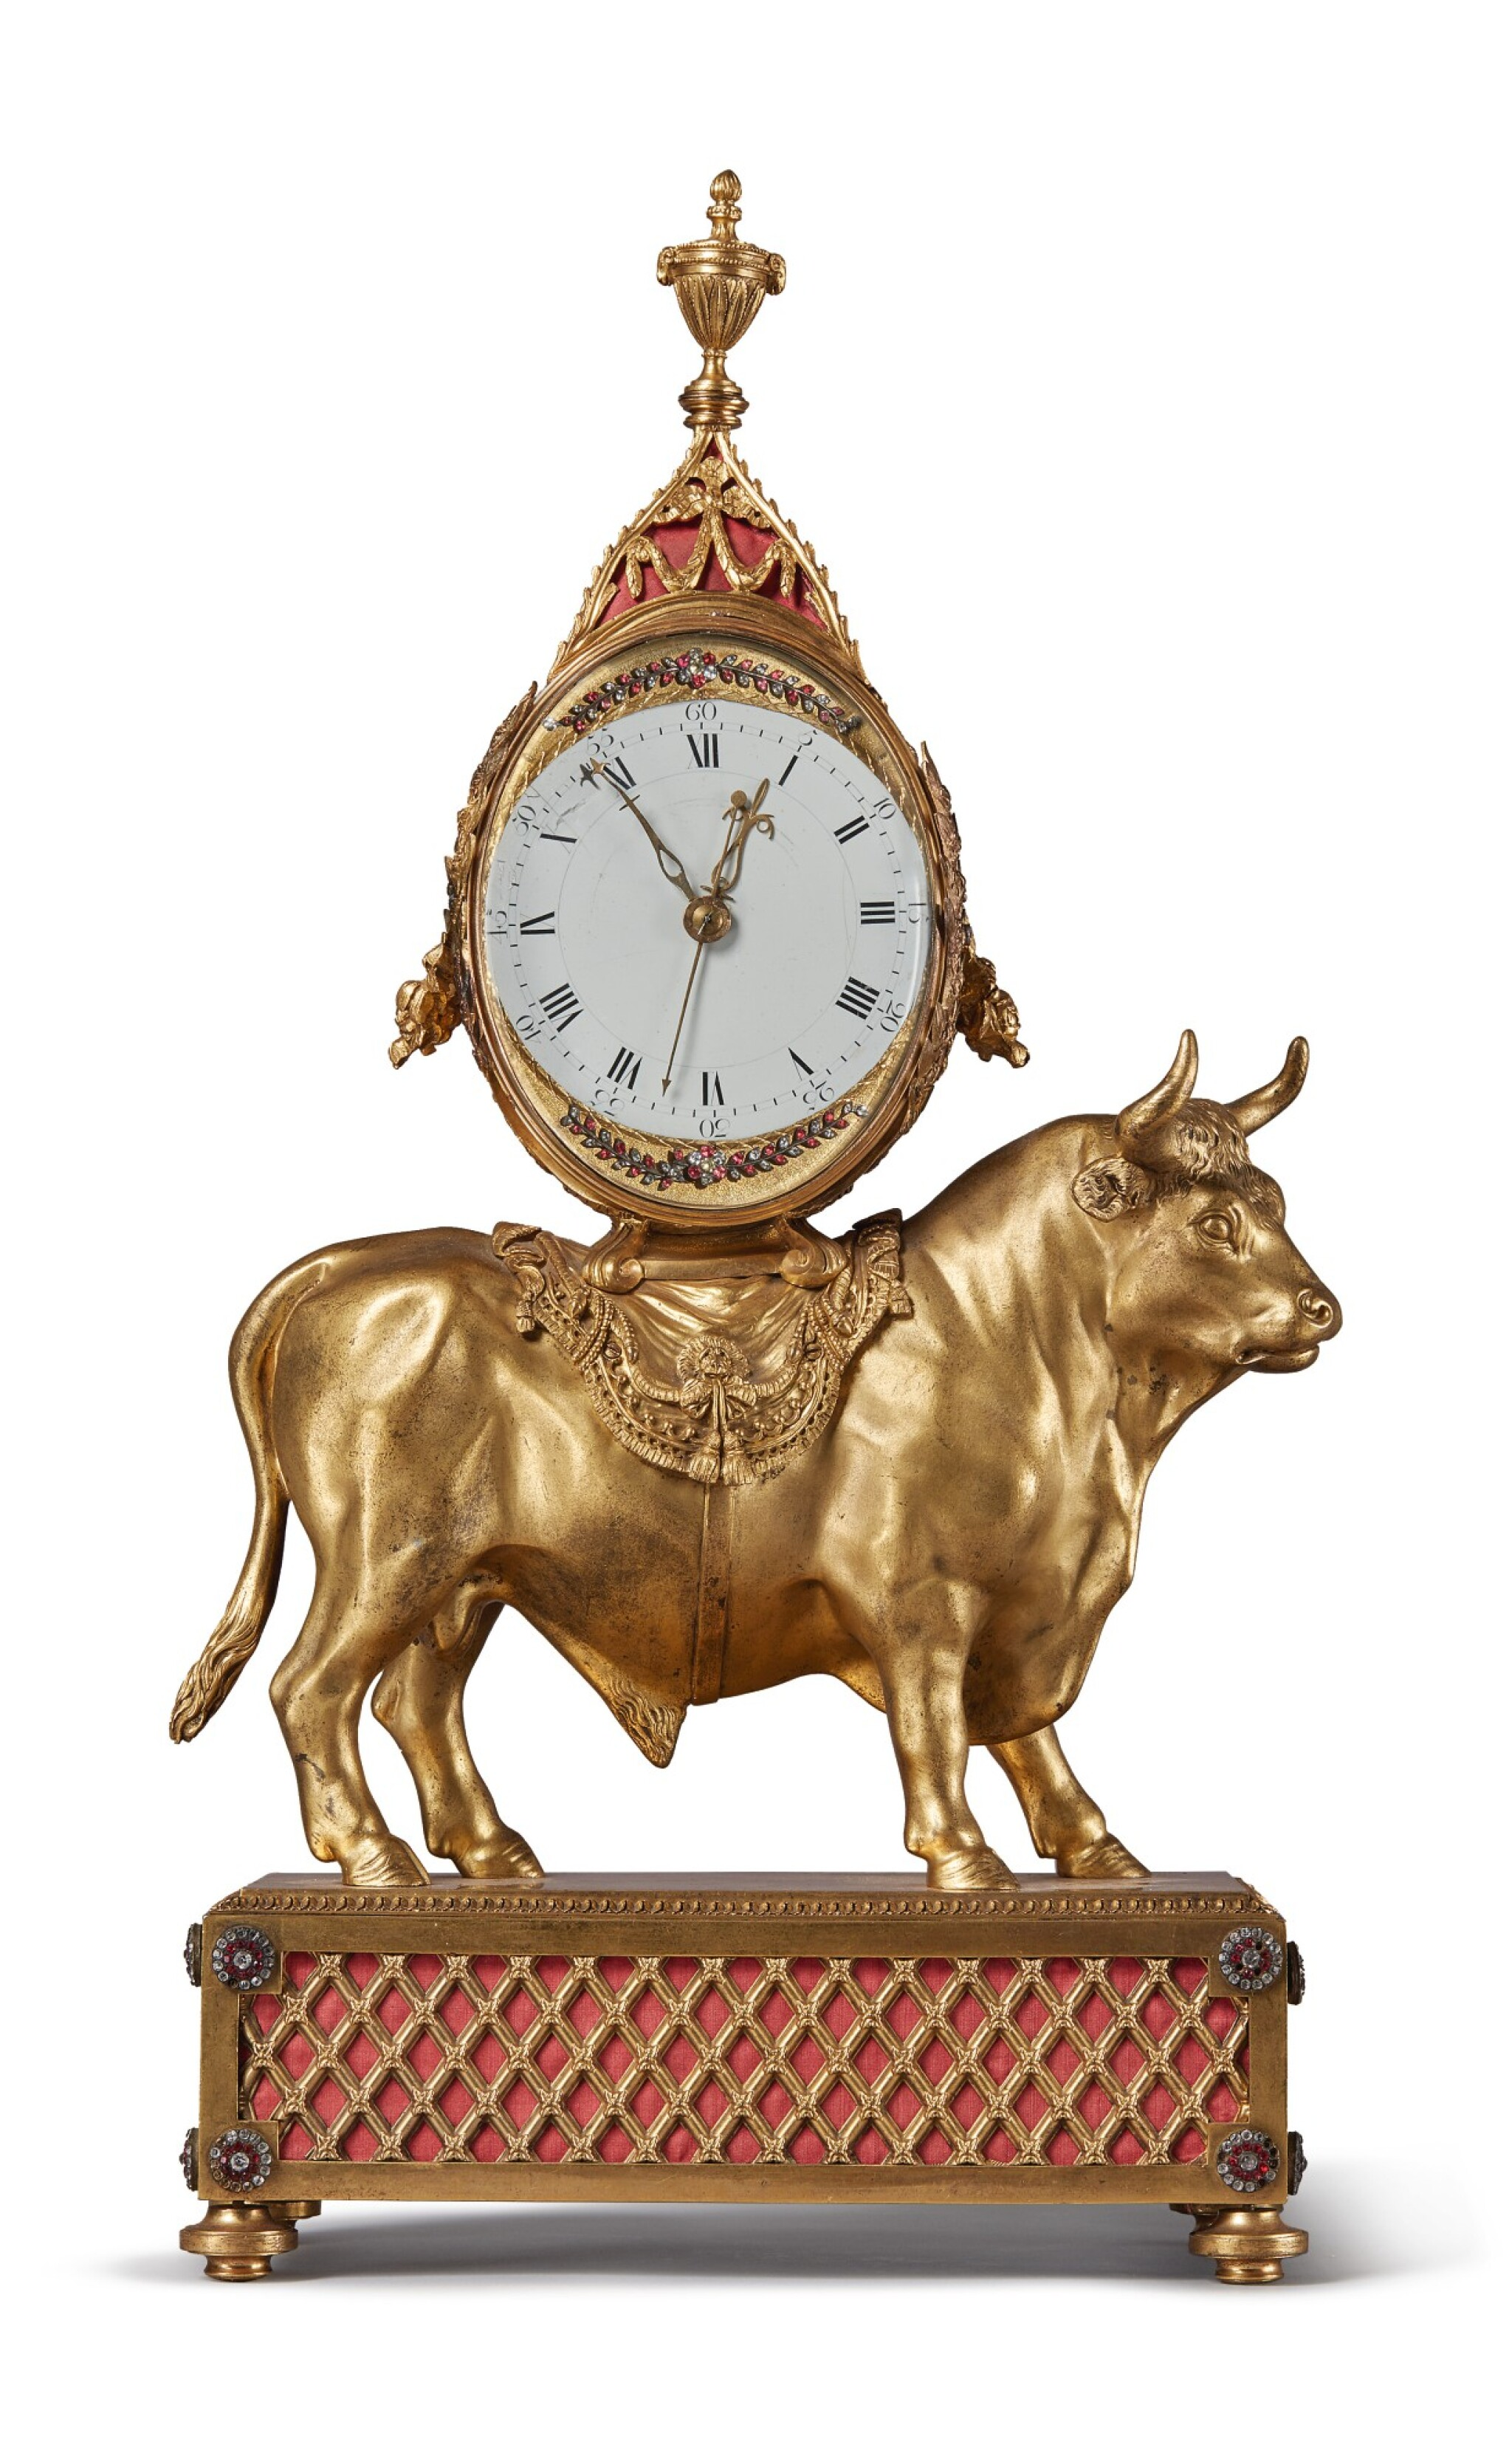 View full screen - View 1 of Lot 137. AN ENGLISH GEORGE III GILT BRONZE MANTLE CLOCK BY TIMOTHY WILLIAMSON, LONDON, MADE FOR THE CHINESE MARKET, CIRCA 1780.